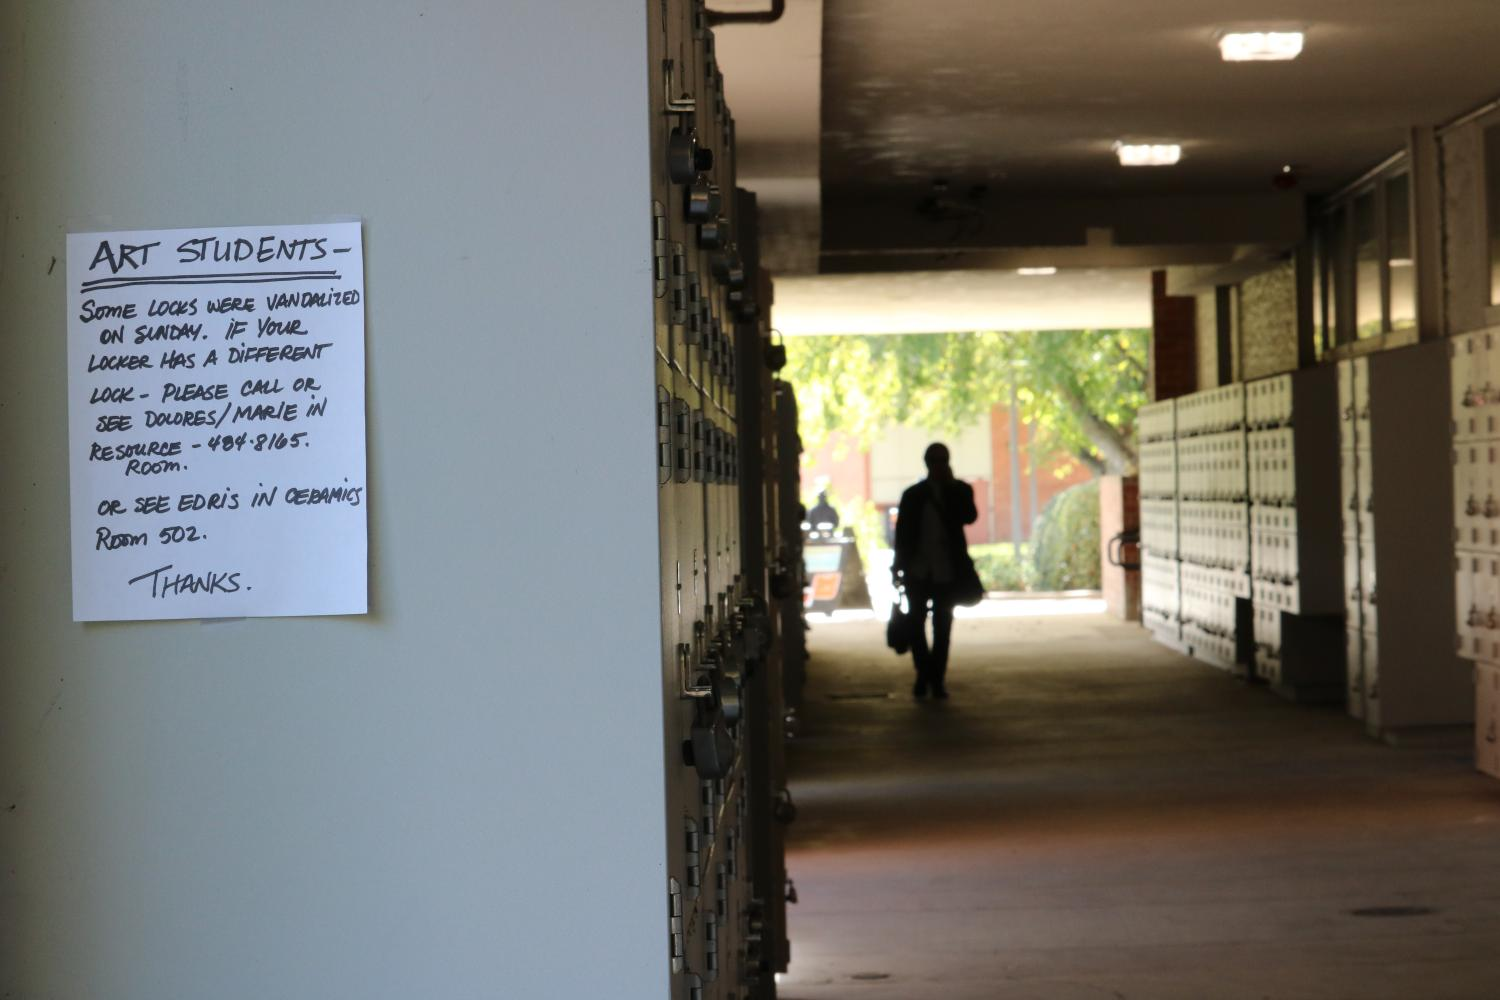 Signs were posted throughout the Fine and Applied Arts Department warning students about the lockers which were vandalized on the weekend of Oct. 12, 2018. (Photo courtesy of Luis Gael Jimenez)